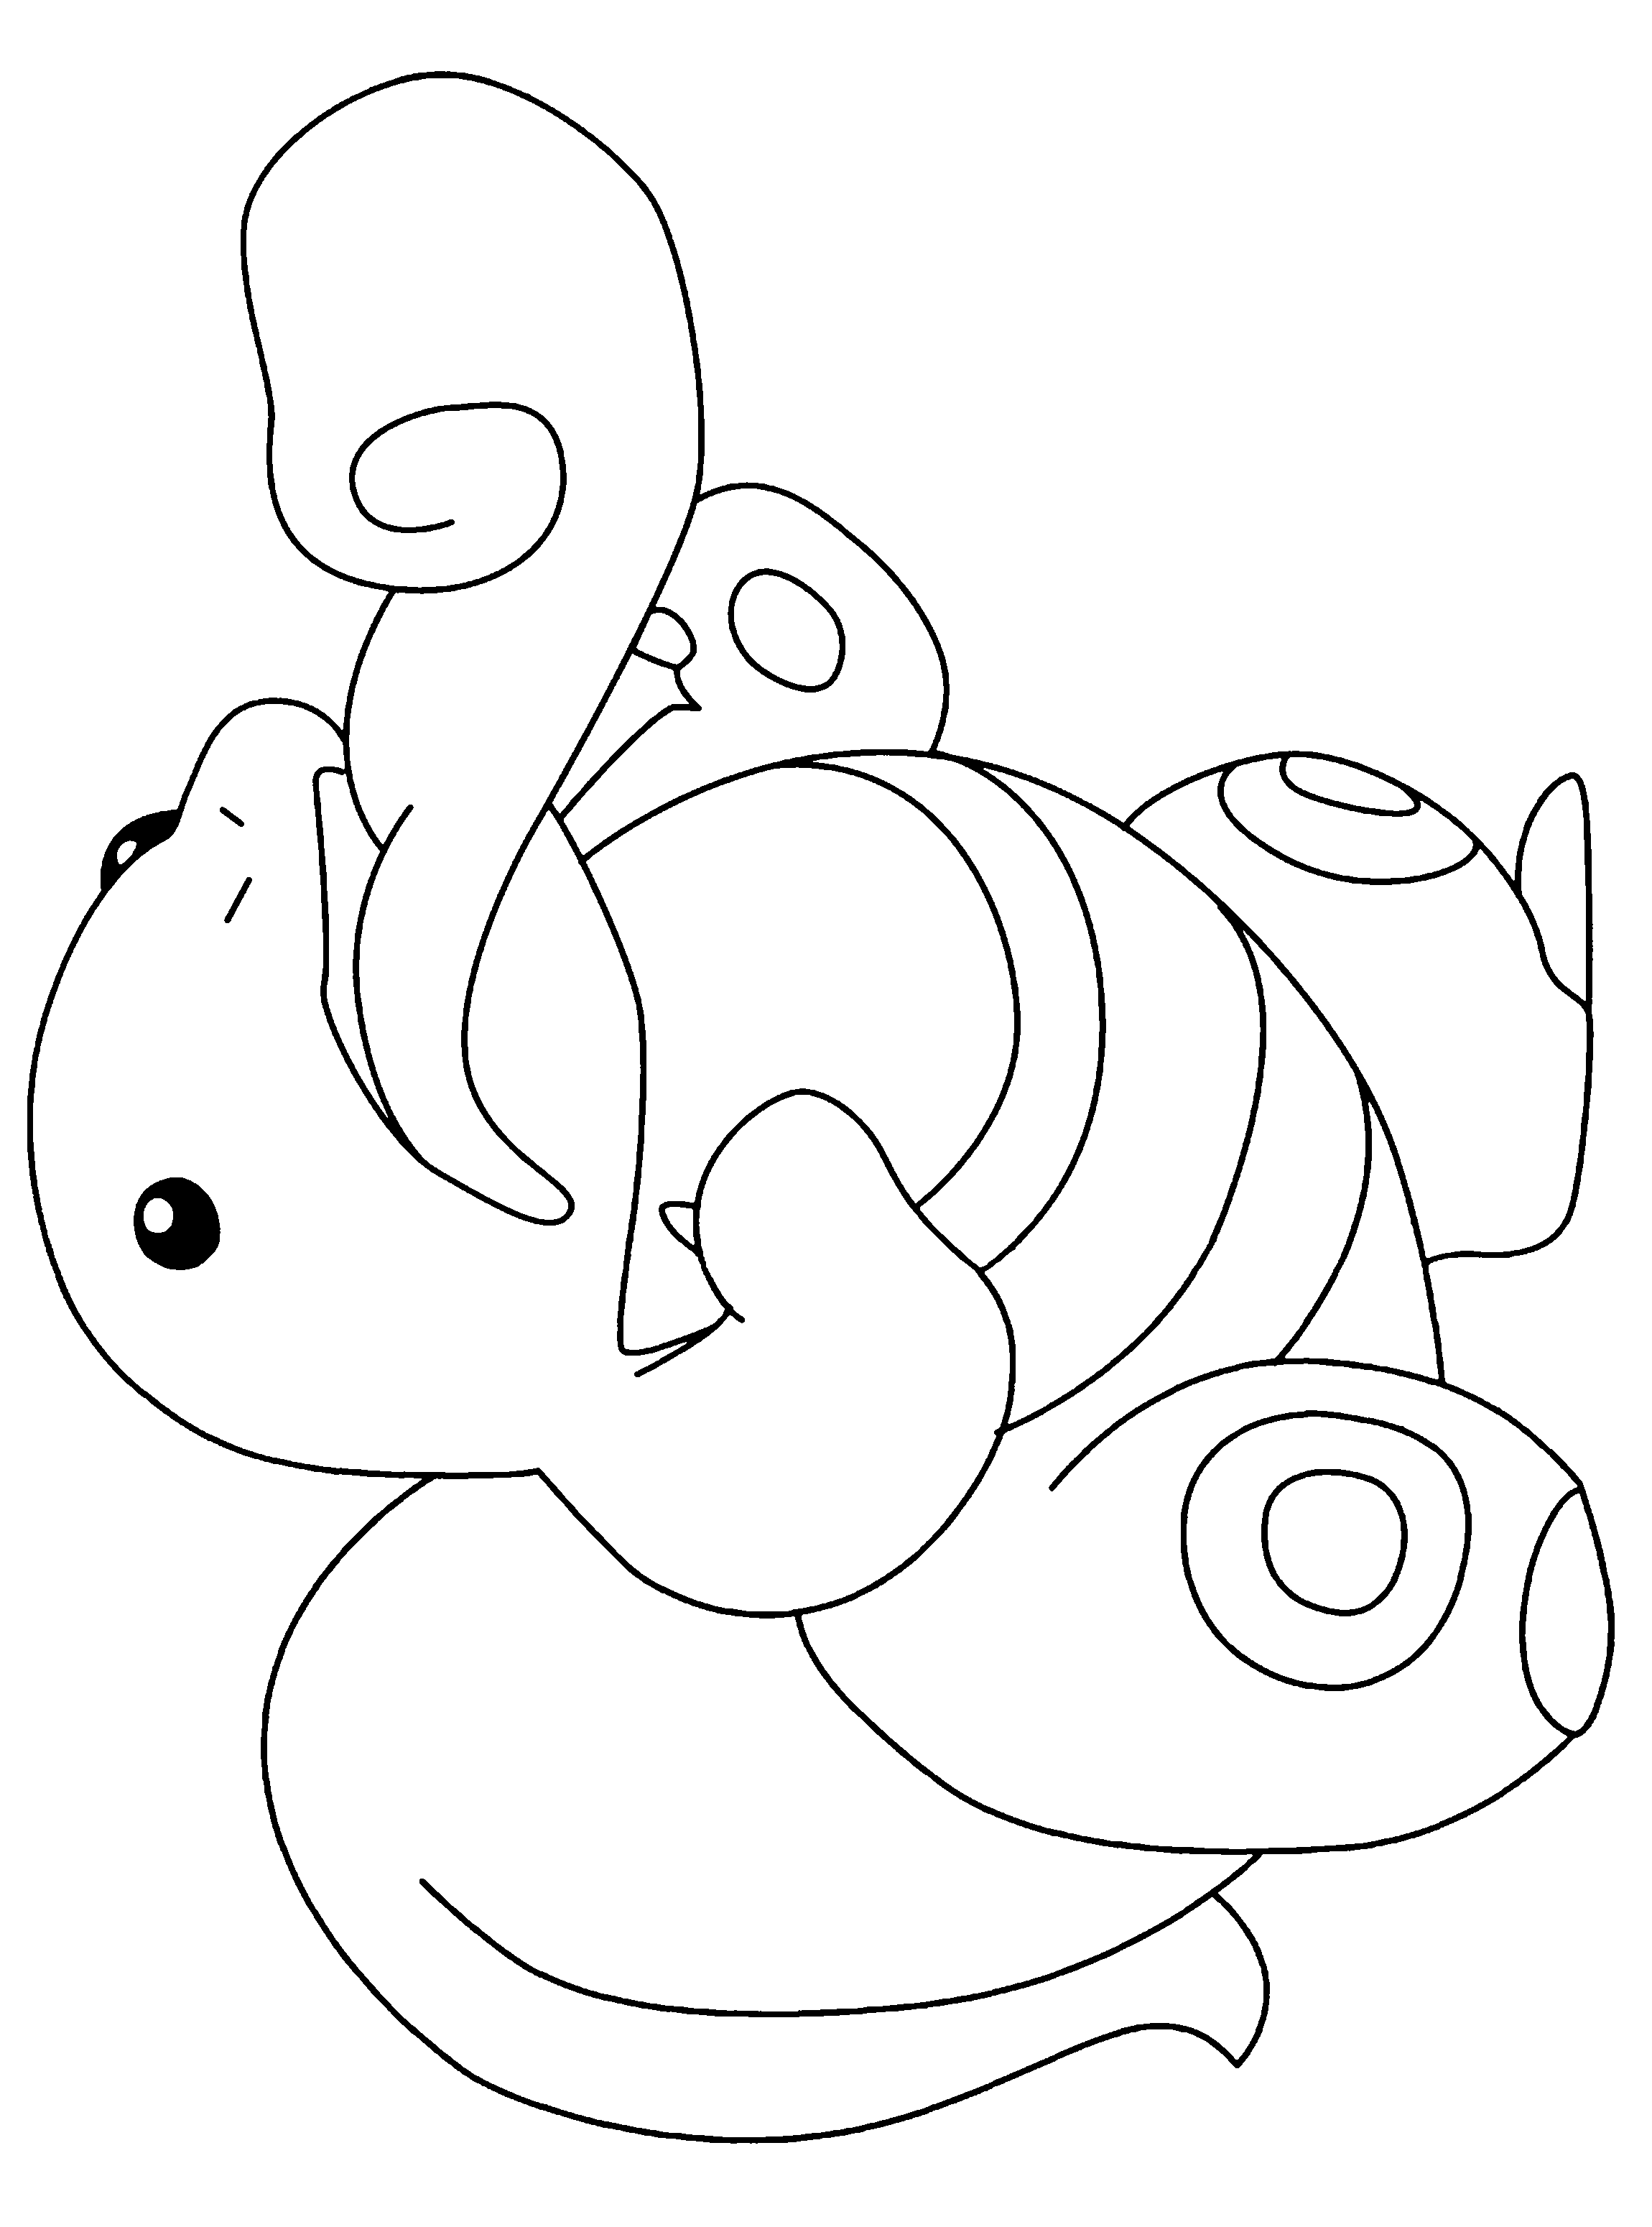 pokemon colouring in sheets free printable pokemon coloring pages 37 pics how to colouring sheets pokemon in